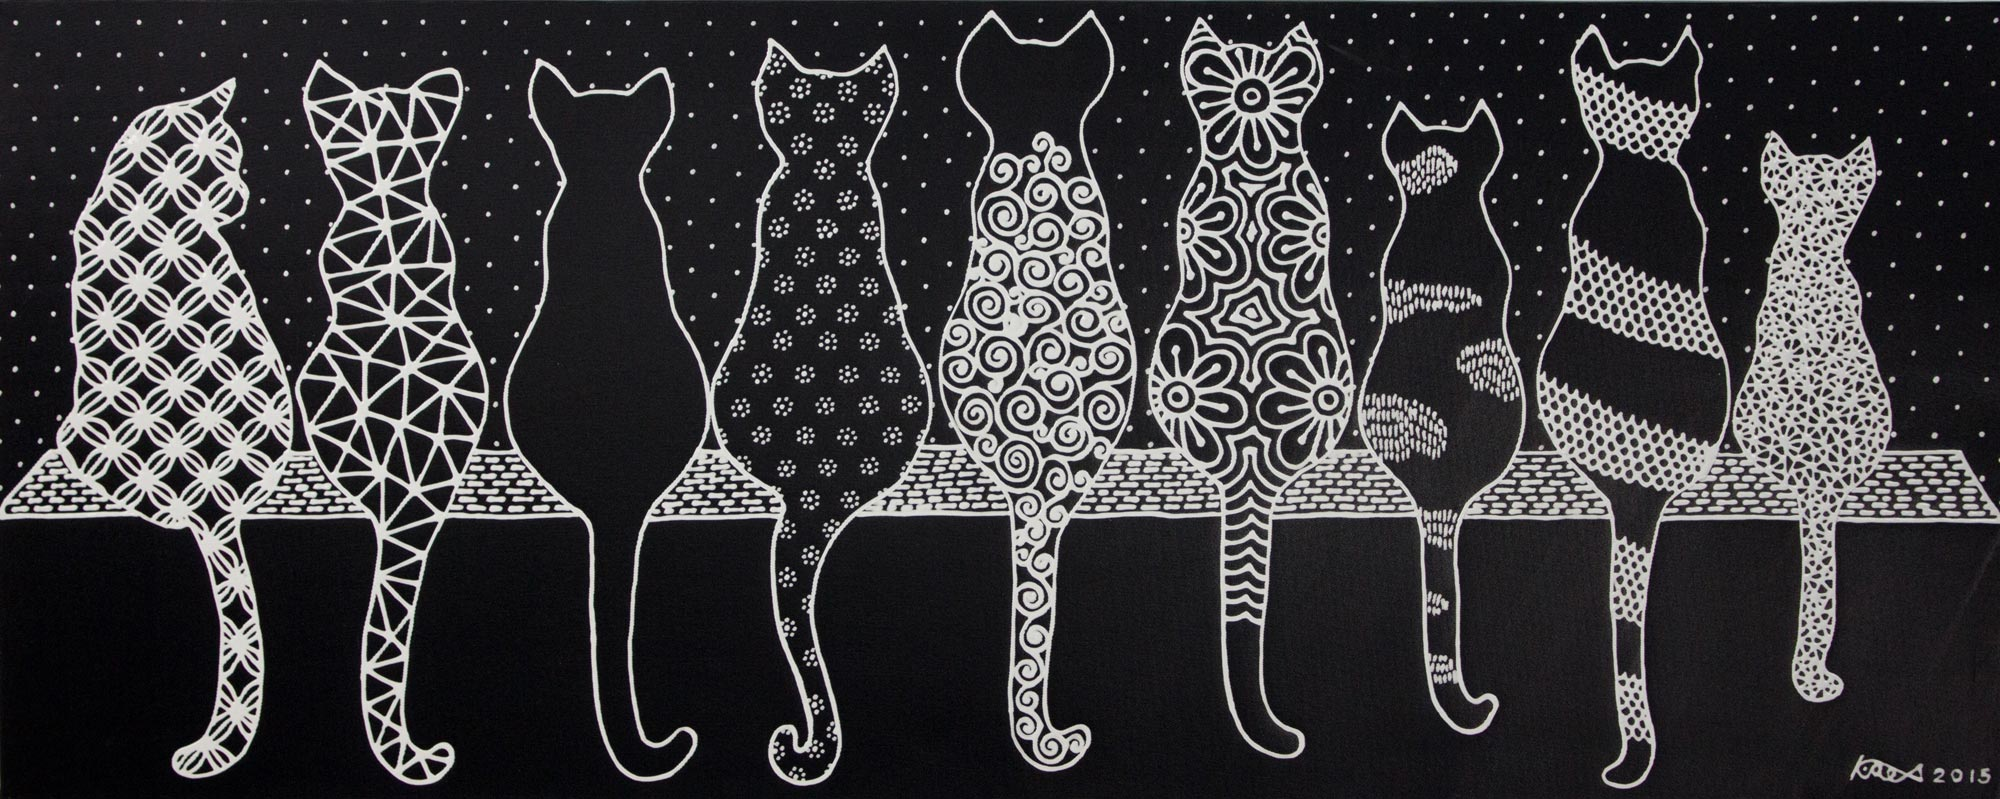 Cat Family Black and White Acrylic Painting of Cats on a Ledge animal themed